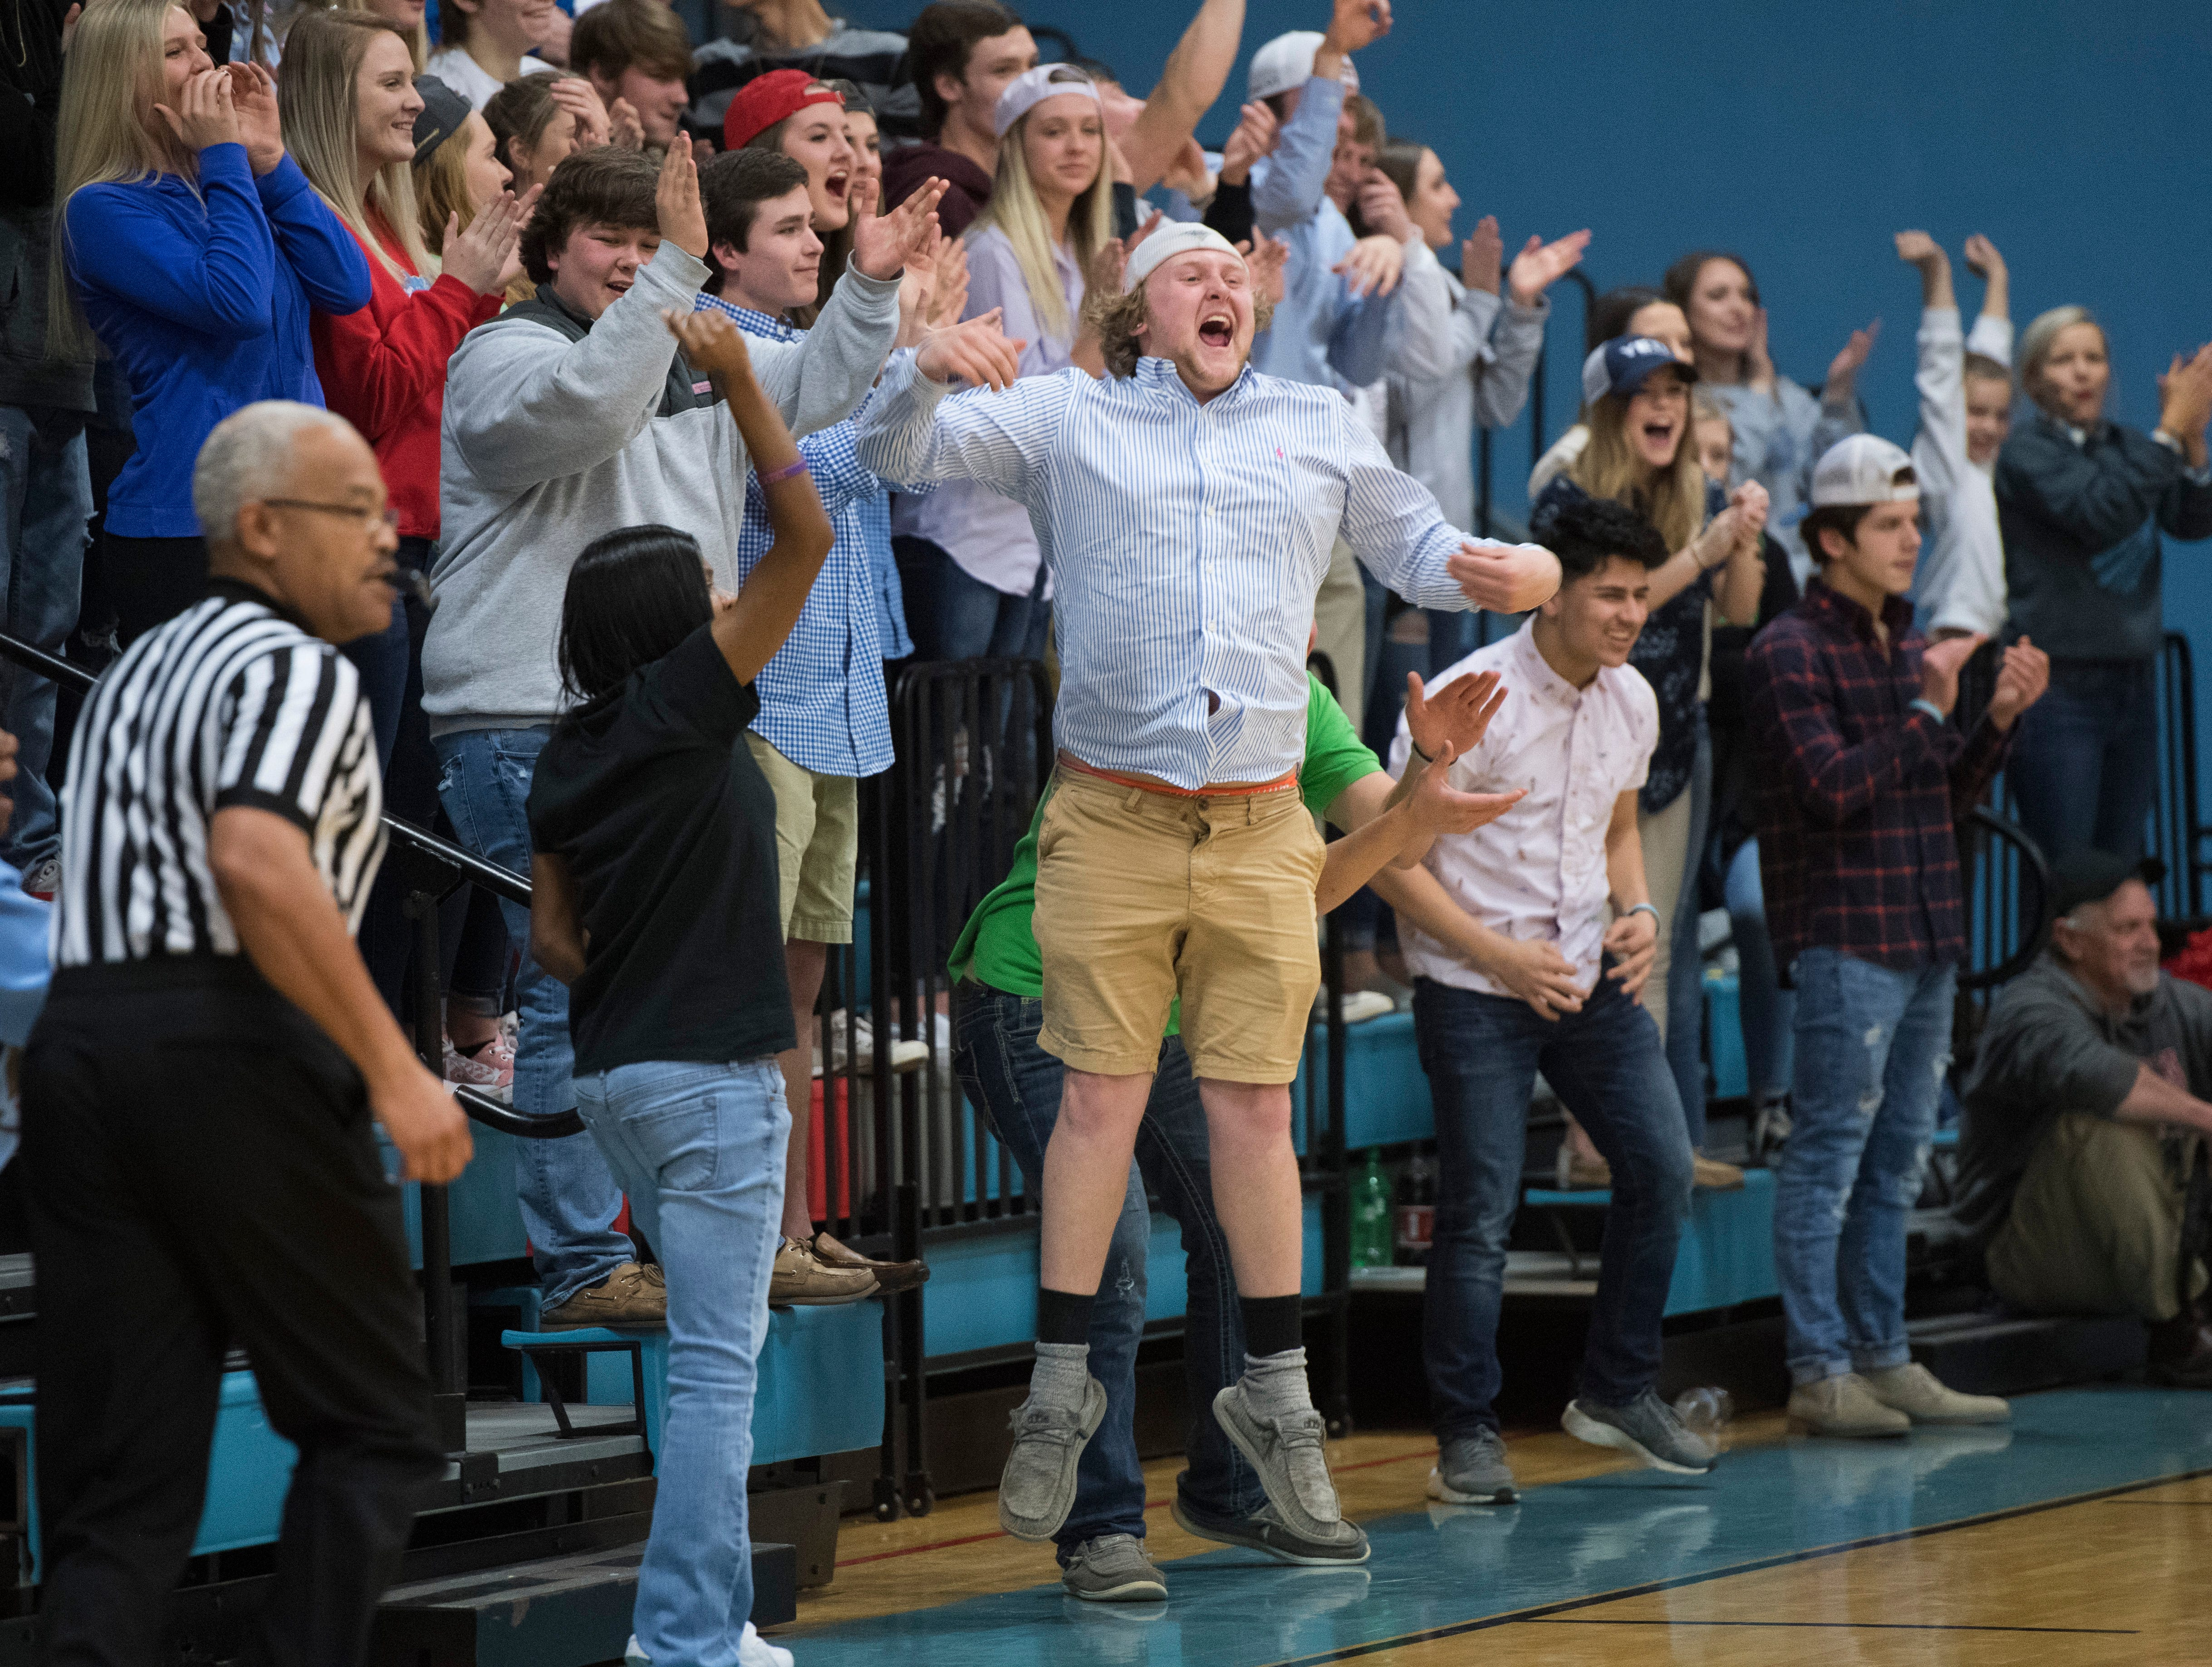 The Union County Braves student sections erupts during the Union County vs Webster County game at the Dr.Doug Hines Gymnasium in Morganfield, Ky. Tuesday, Feb. 19, 2019.